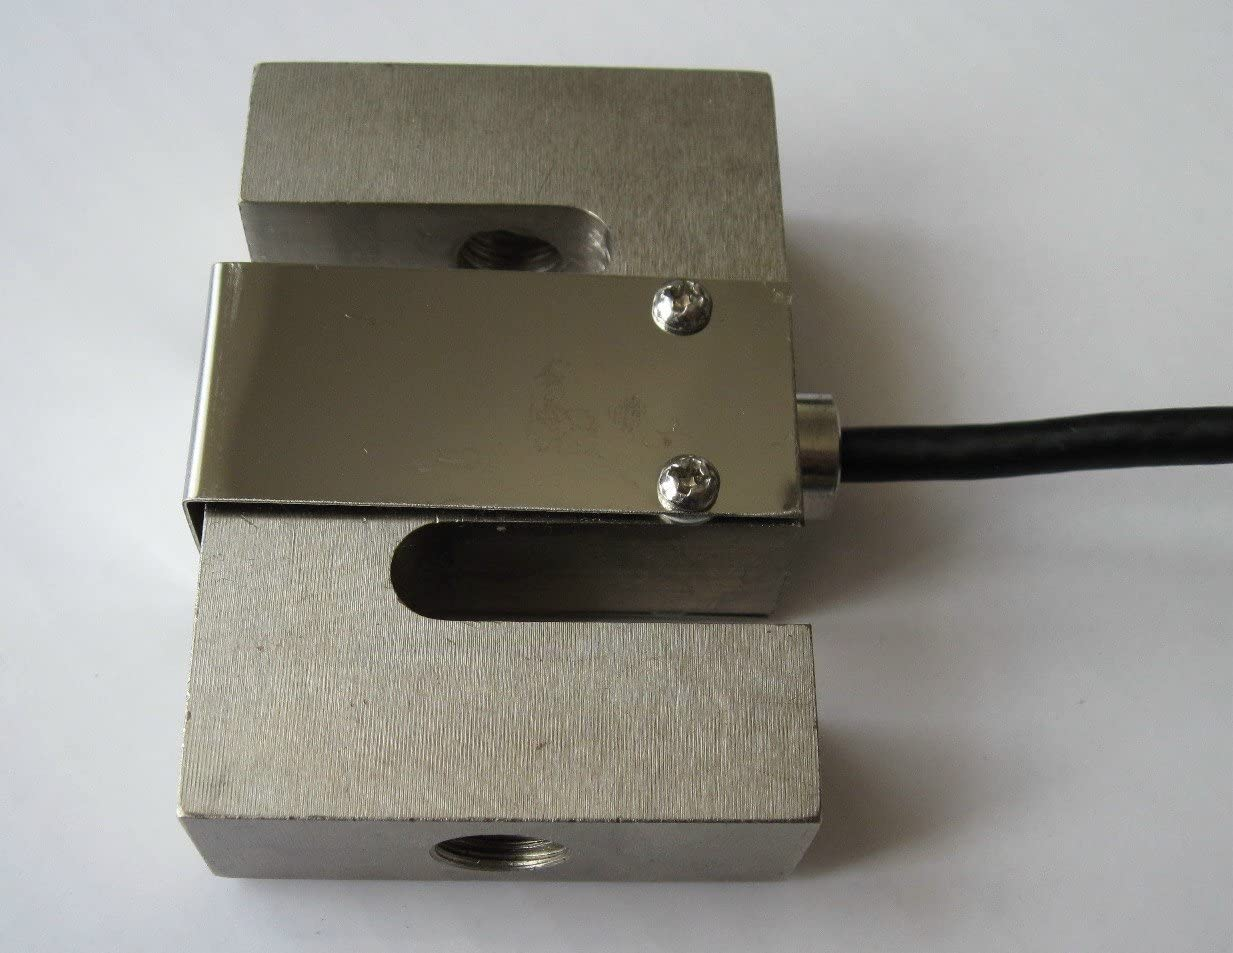 Keli Electric S-Type Super Special SALE held Load Cell Hanging Crane Scale LB 250 Capaci Outlet sale feature